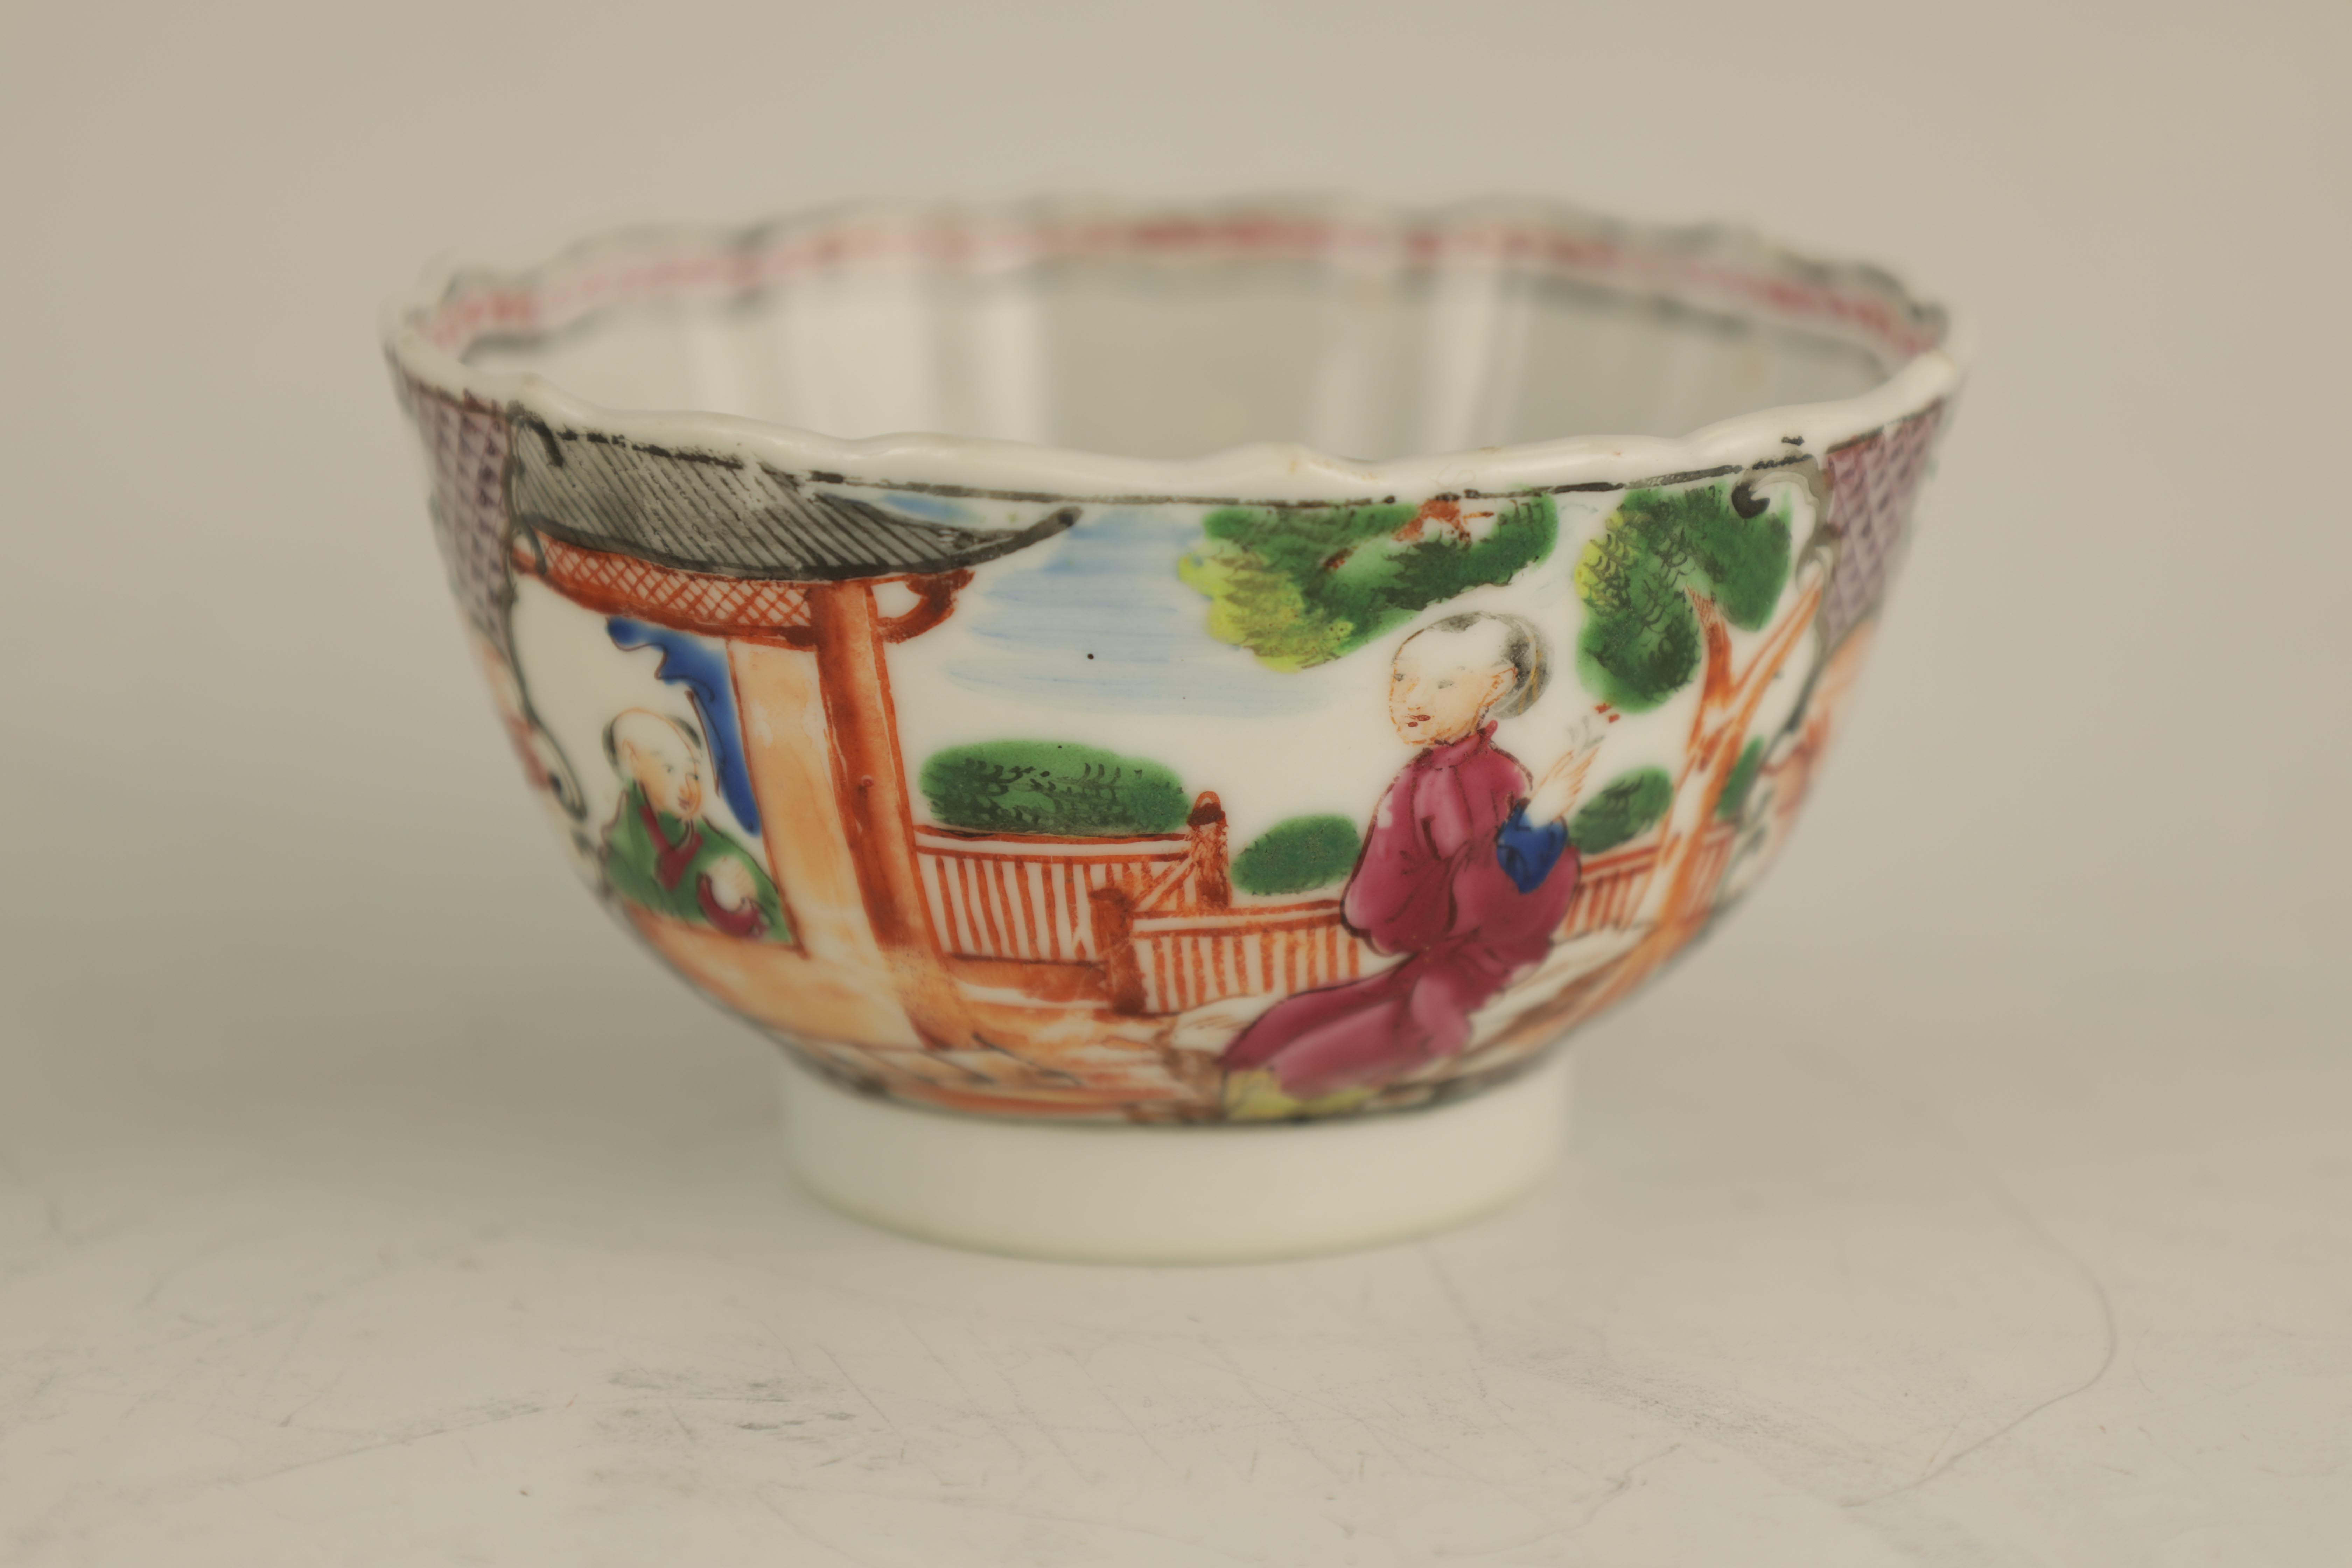 AN EARLY 19TH CENTURY NEW HALL PORCELAIN TEA CUP AND SAUCER decorated in 'The Boy in the Window' - Image 2 of 7